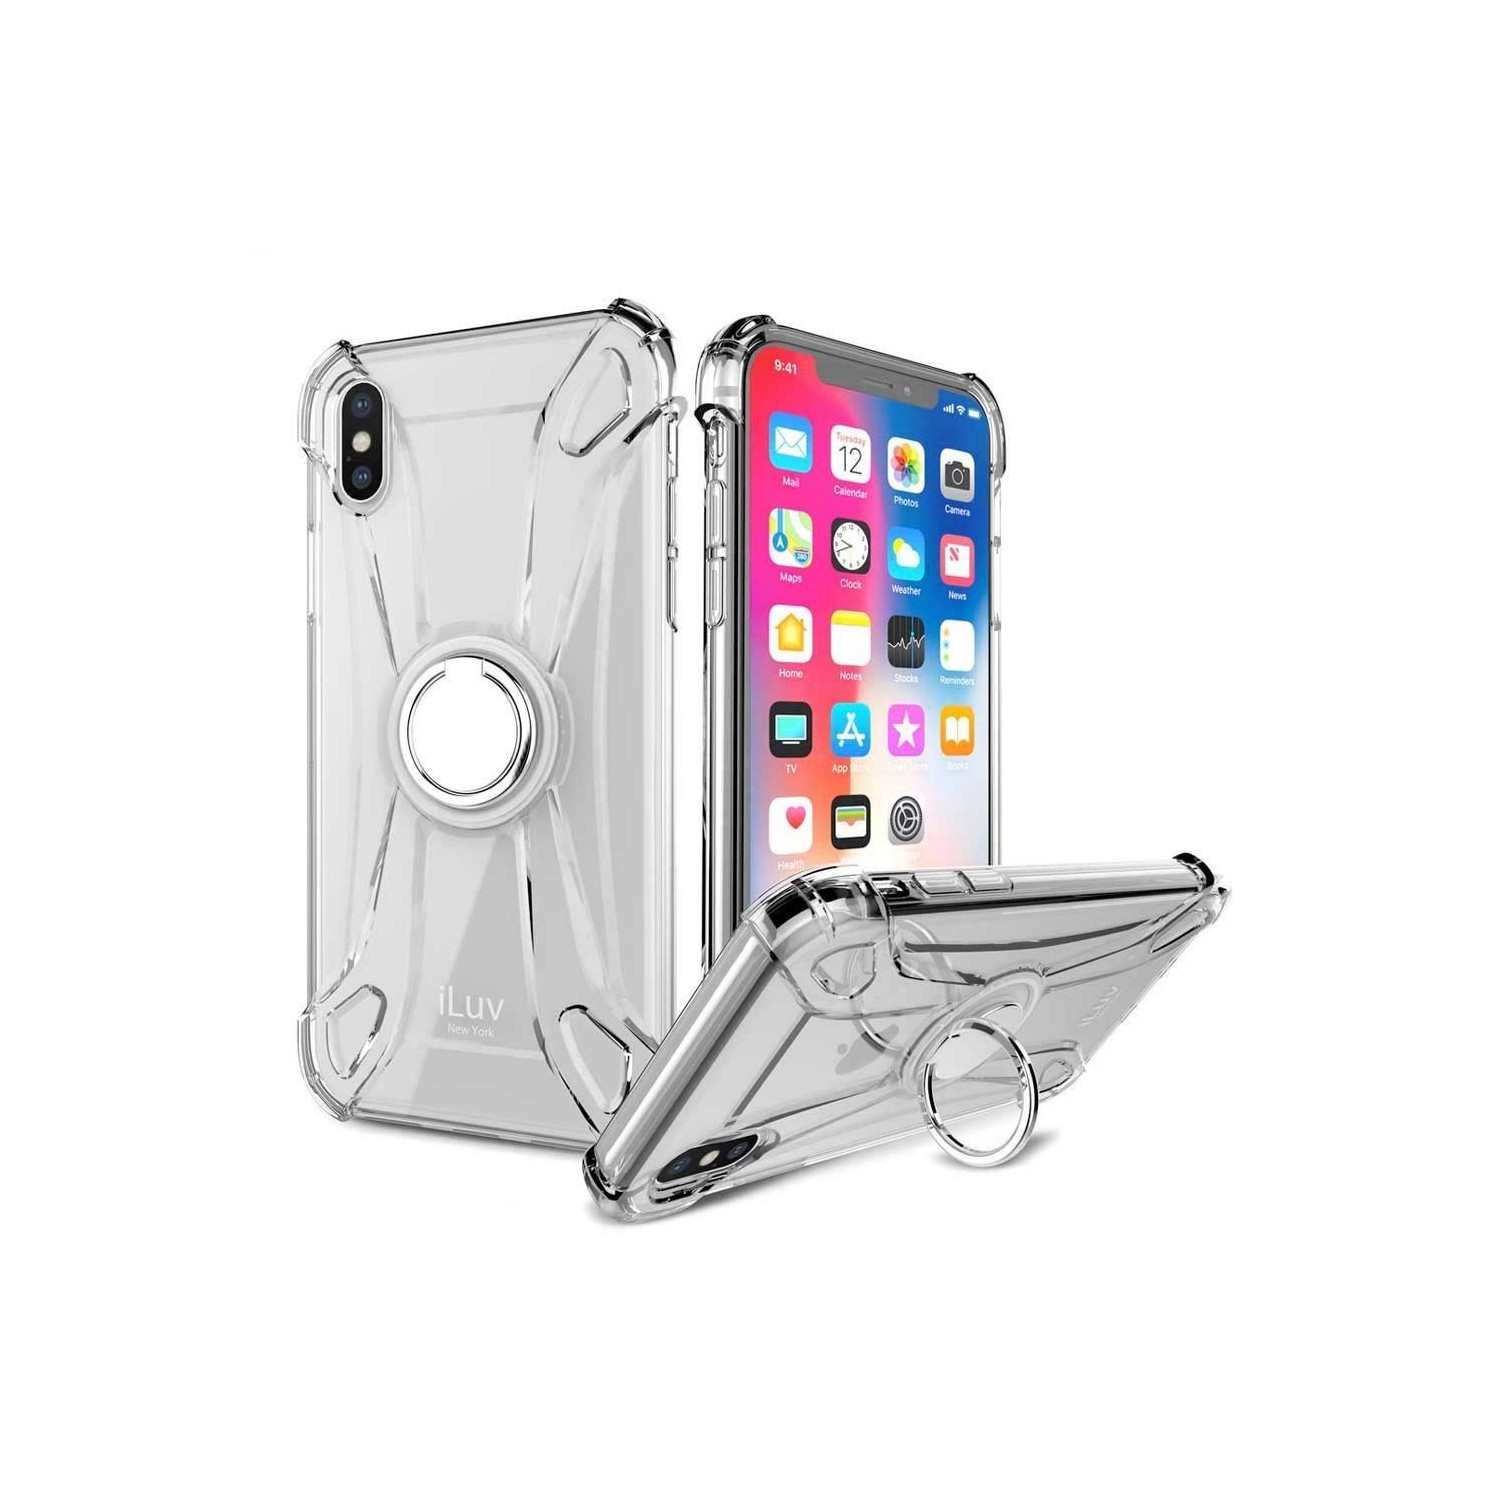 Case - iLuv Crystal Ring for iPhone XS MAX - Clear